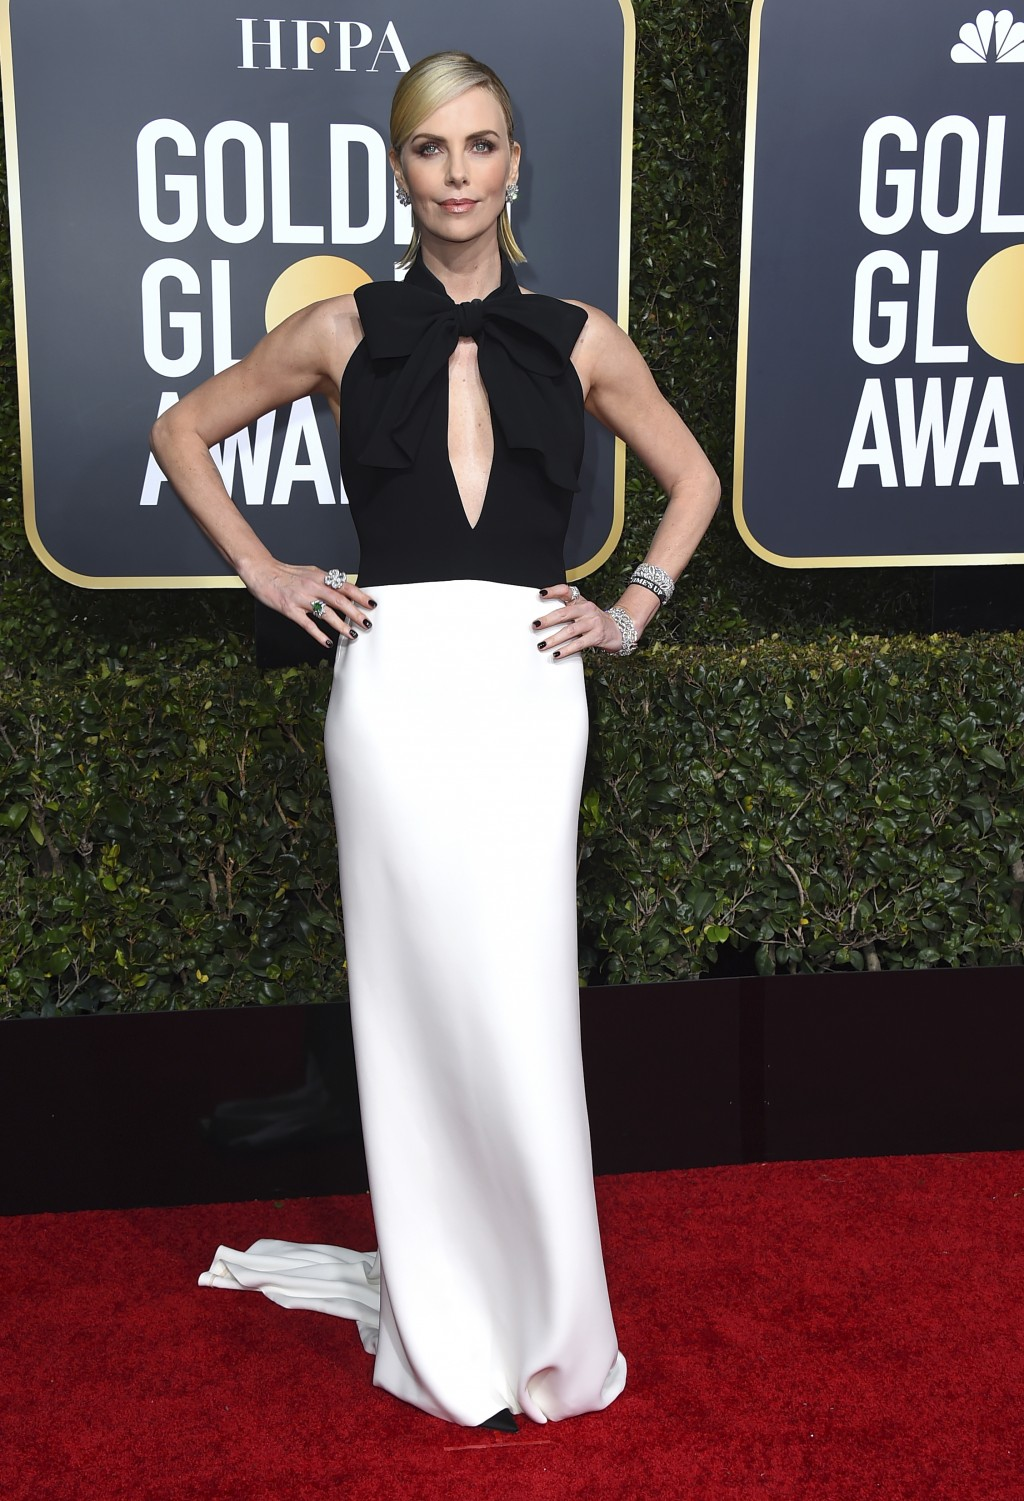 Charlize Theron arrives at the 76th annual Golden Globe Awards at the Beverly Hilton Hotel on Sunday, Jan. 6, 2019, in Beverly Hills, Calif. (Photo by